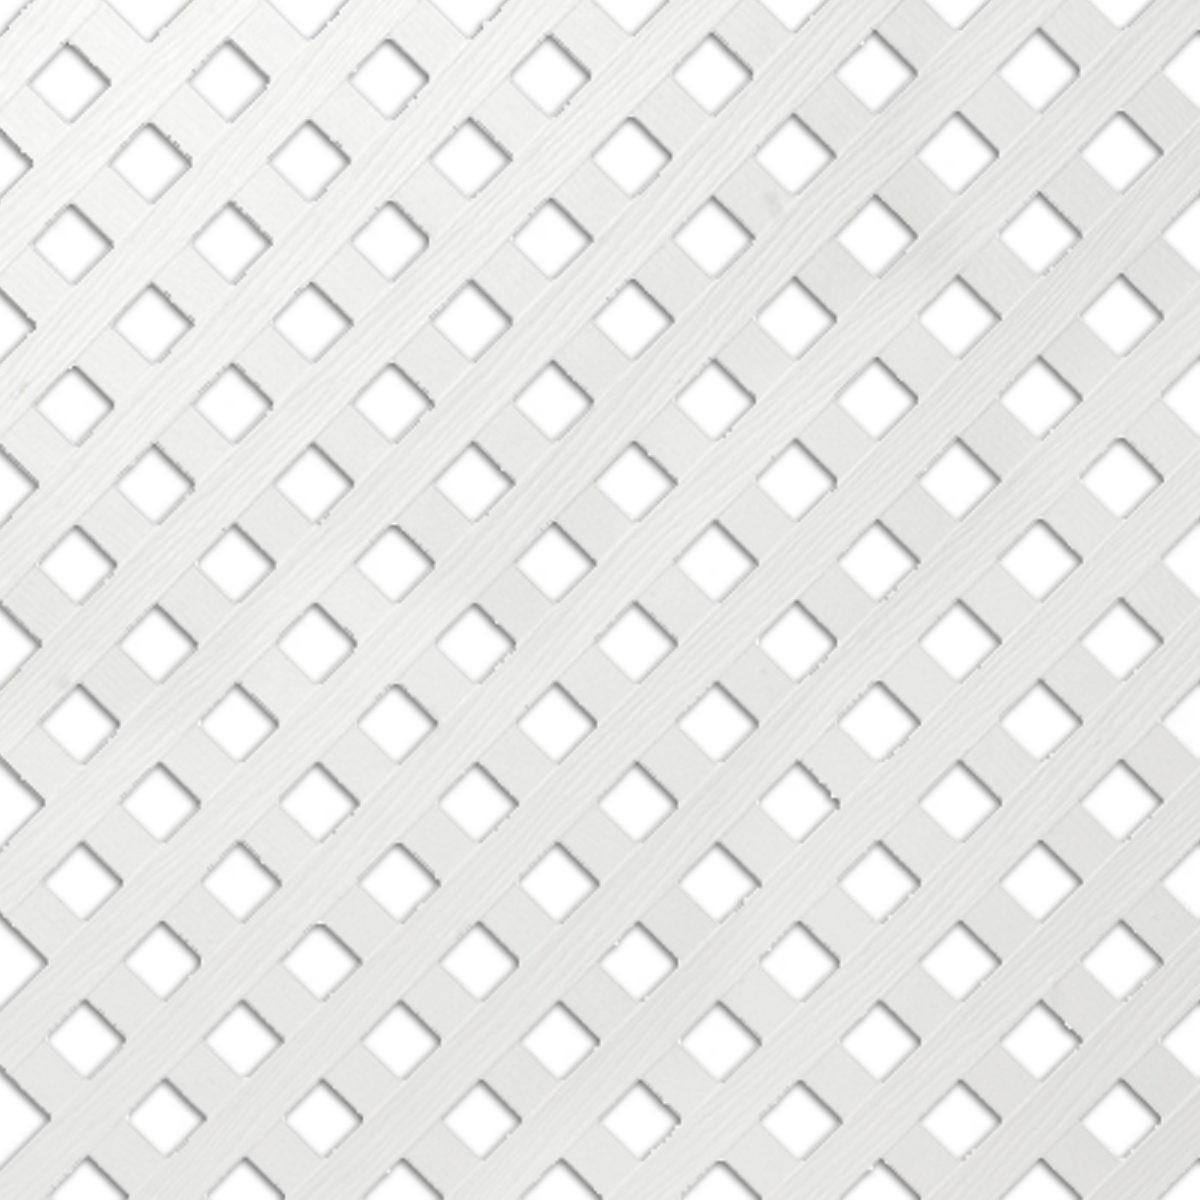 4 X 8 White Vinyl Privacy Lattice